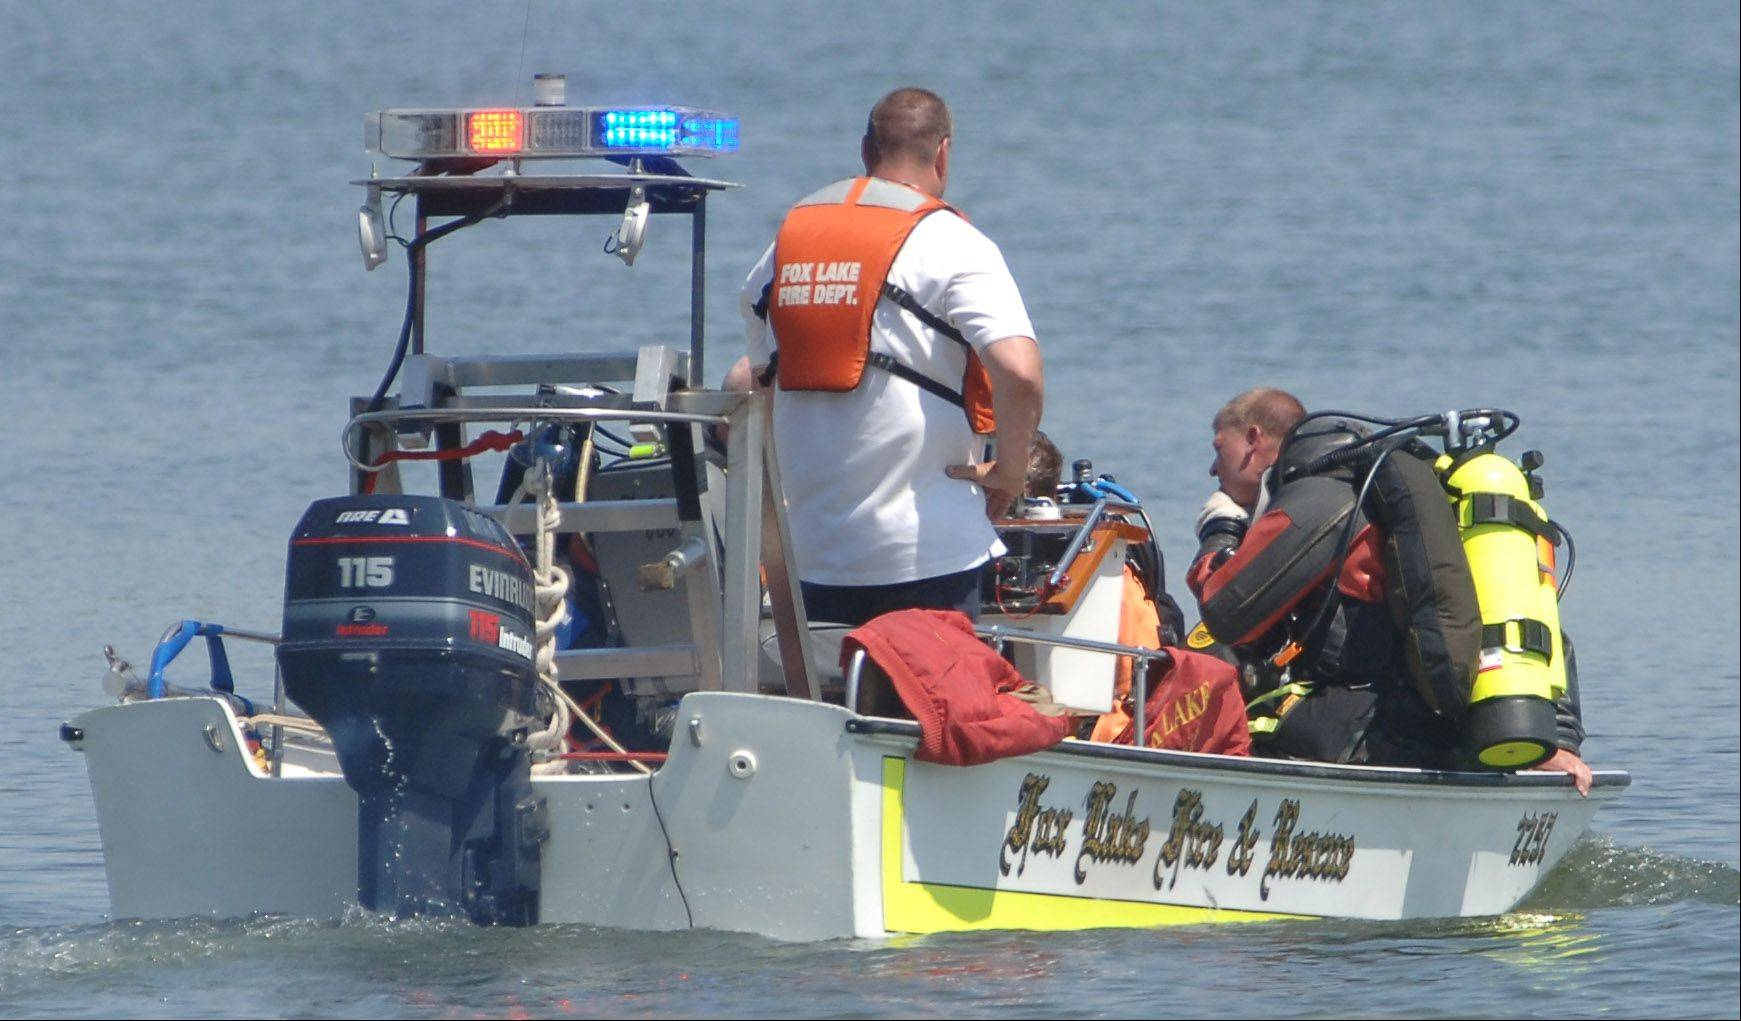 Boats carrying divers head to the search area to look for a missing swimmer on Gages Lake Tuesday near Grayslake.